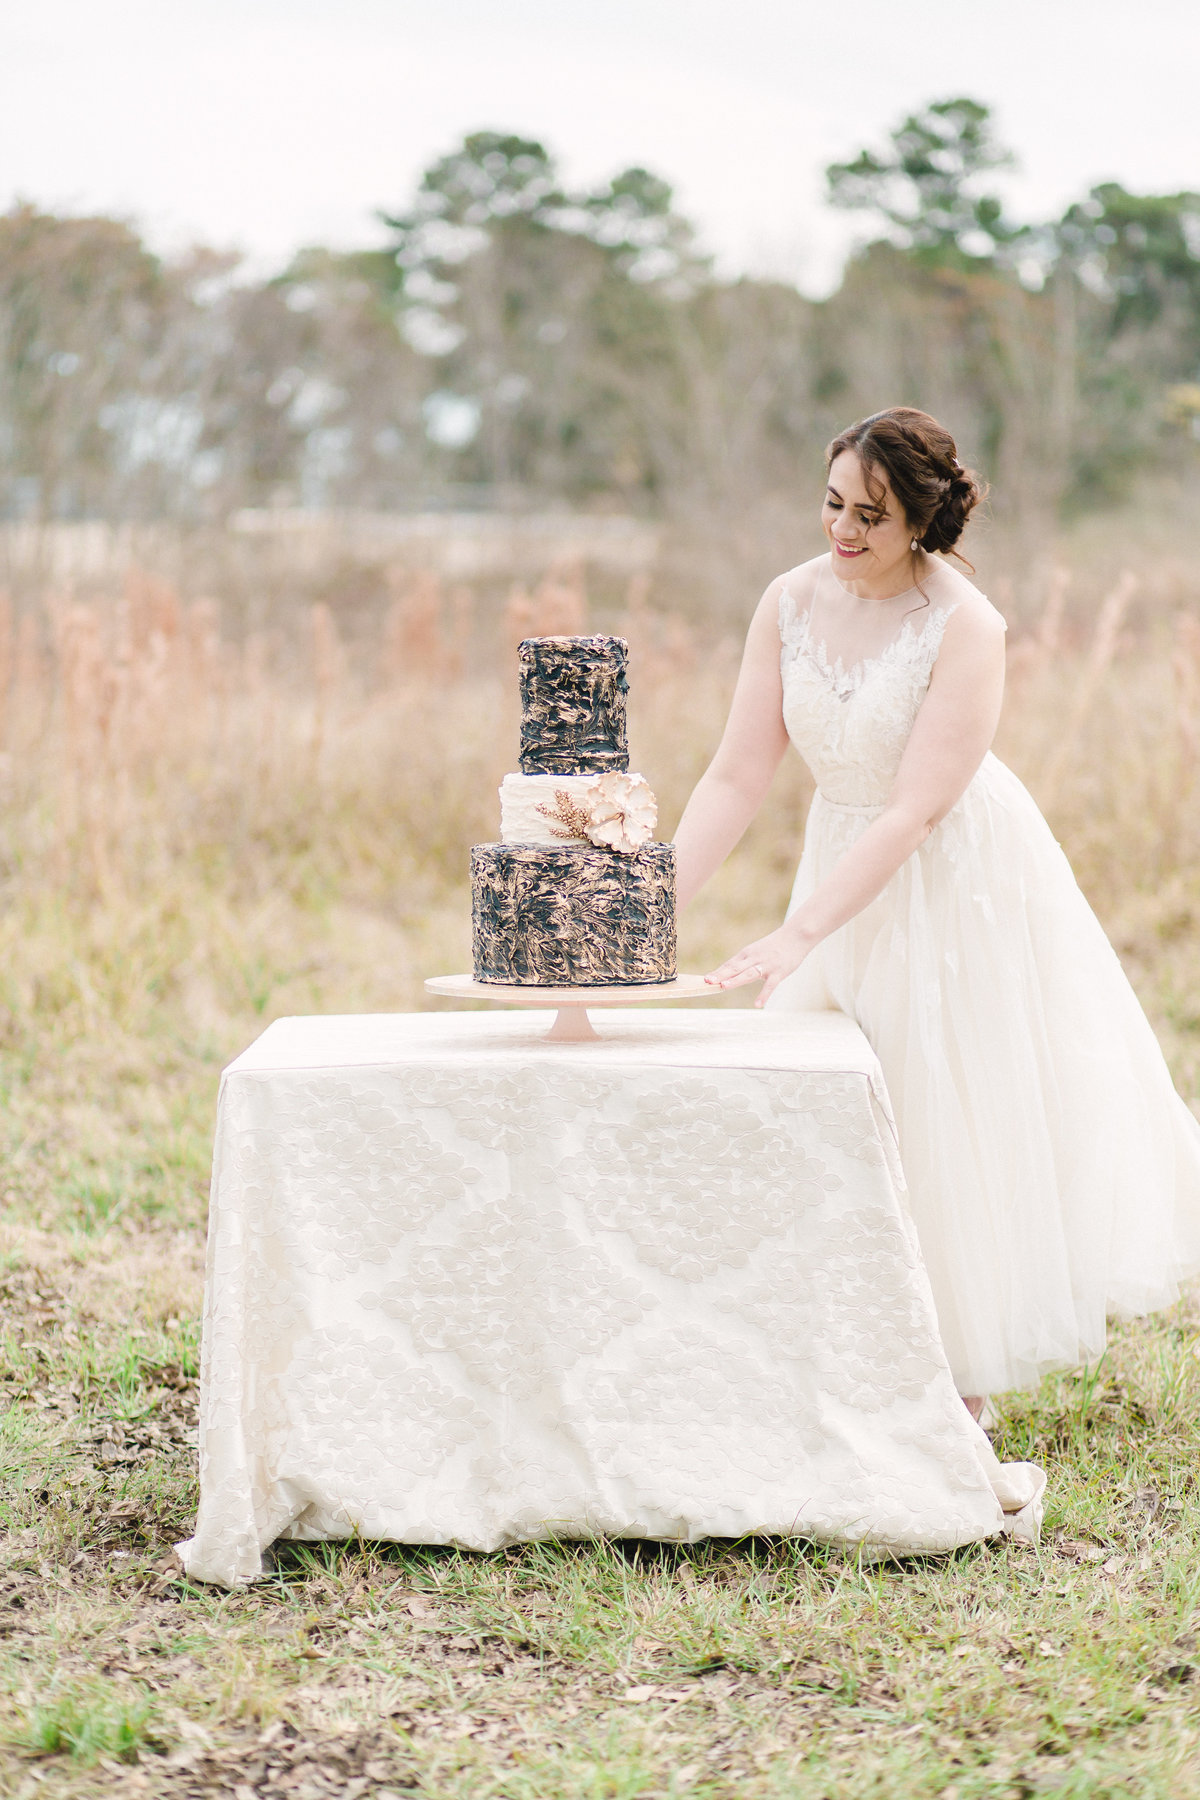 The-woodlands-bridal-session-alicia-yarrish-photography-53